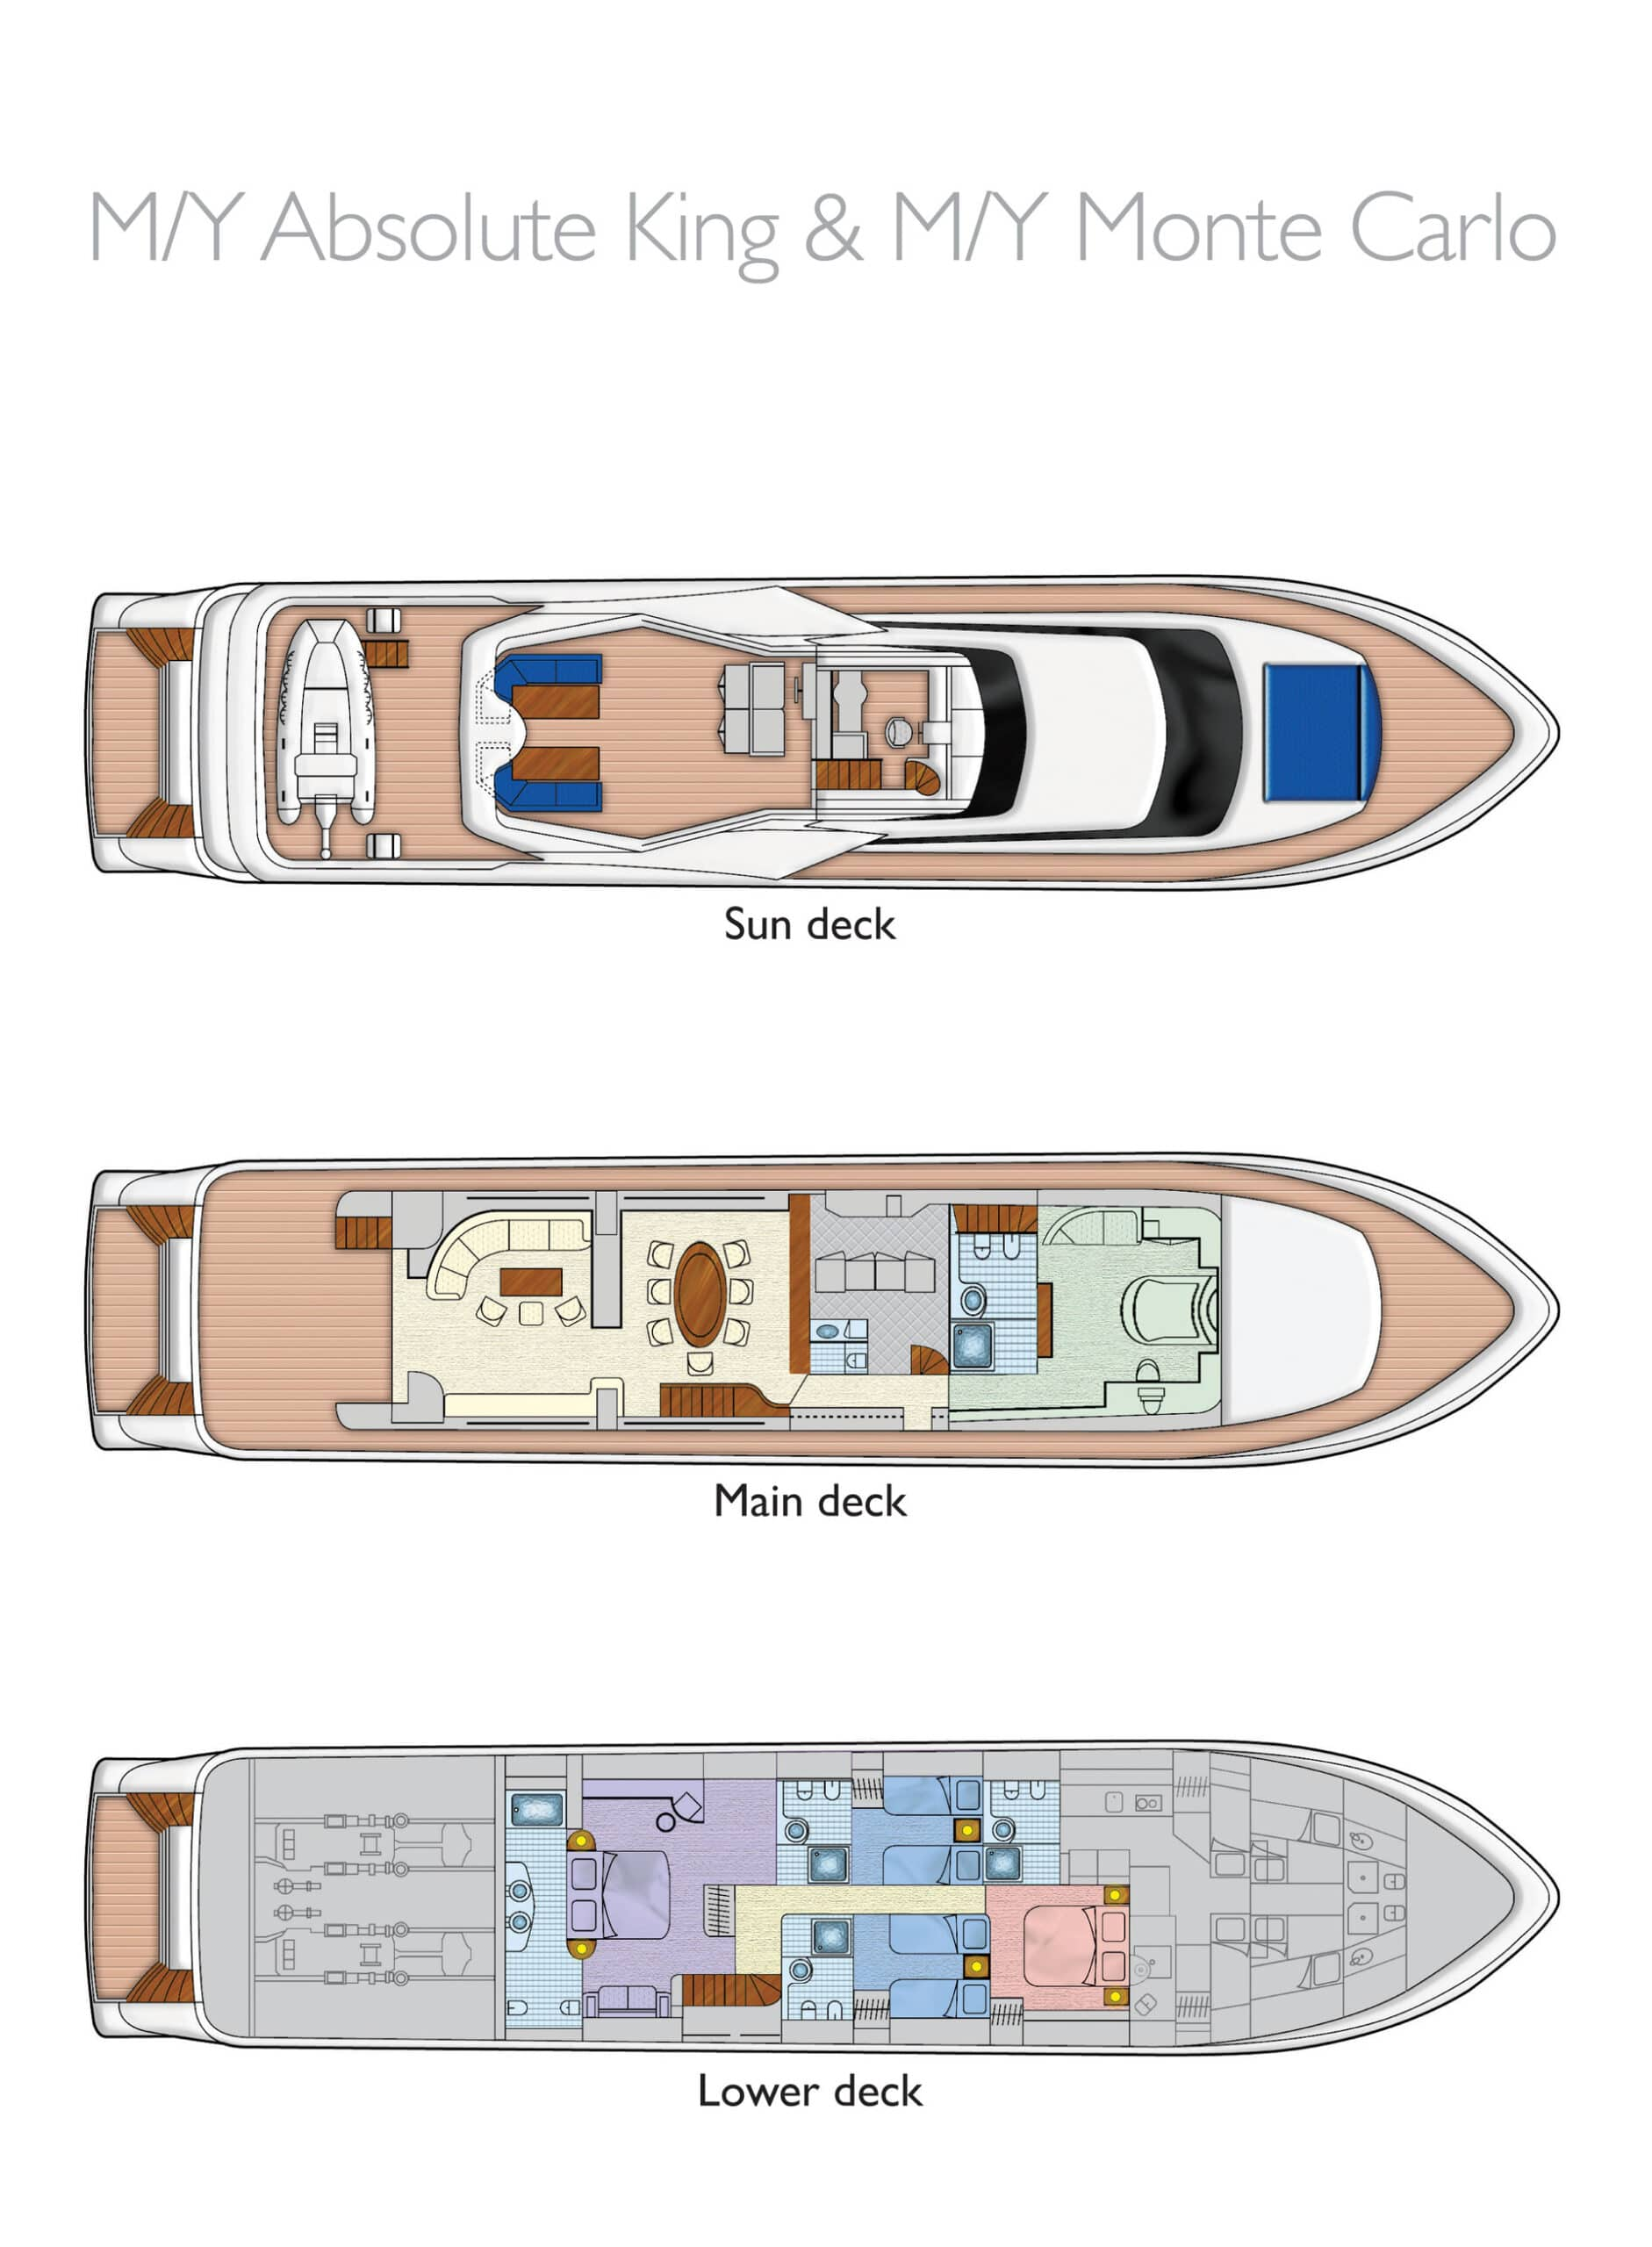 Deck plan of Monte Carlo & Absolute King private charter yachts in Greece, with 3 passenger decks, 5 cabins, lounge & dining area.